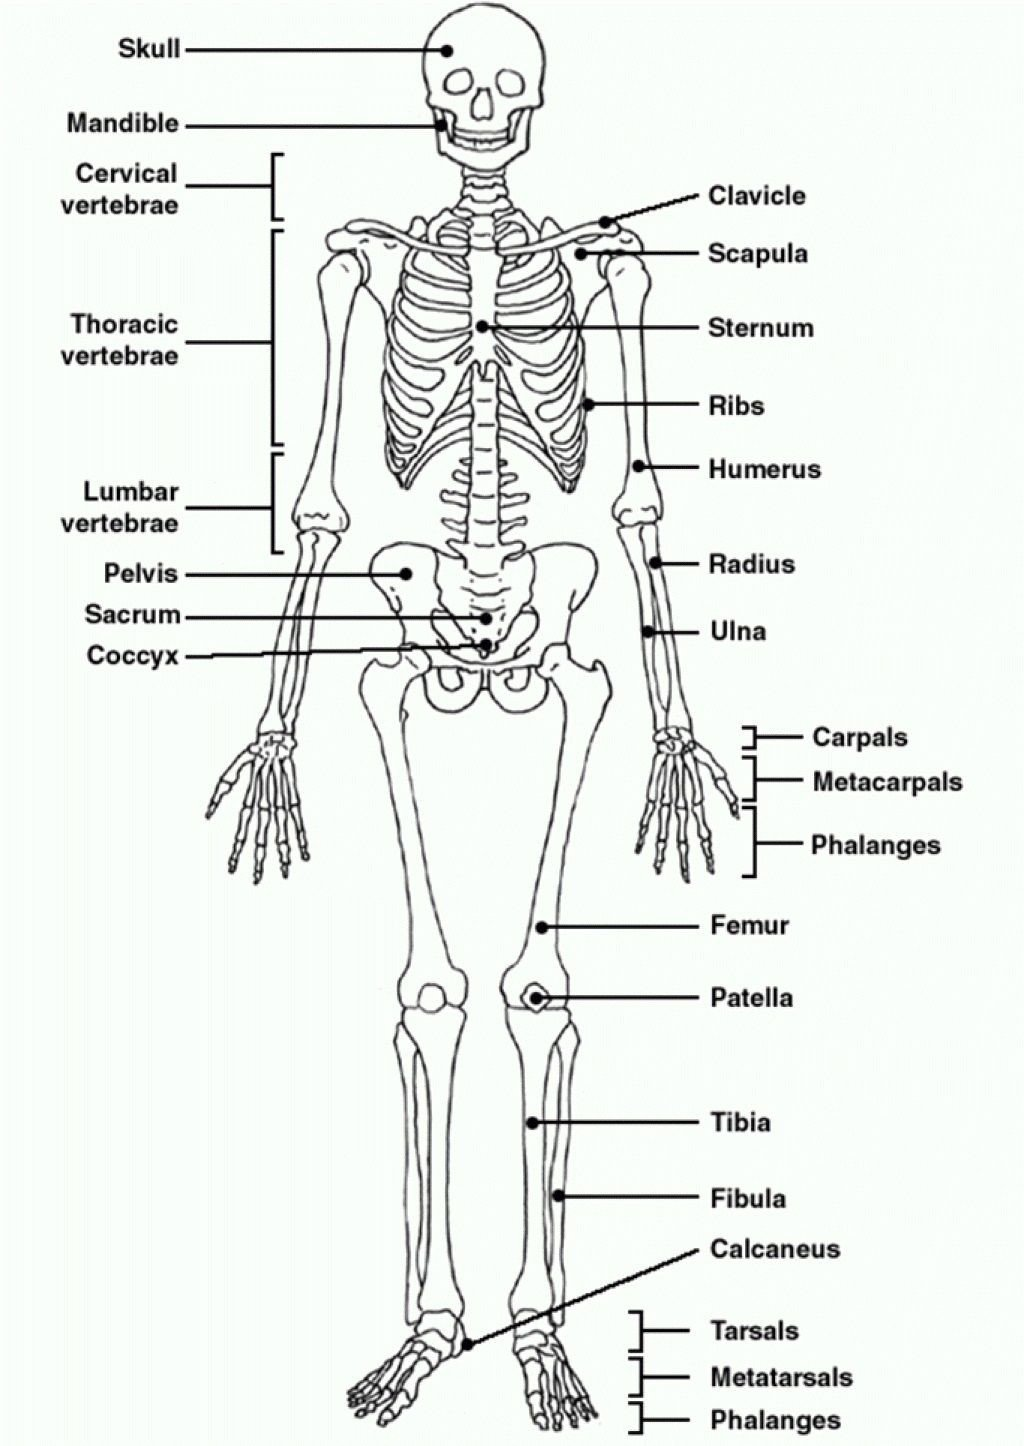 Blank Skeletal System Worksheet Human Skeleton Diagram Unlabeled Human Skeleton Diagram